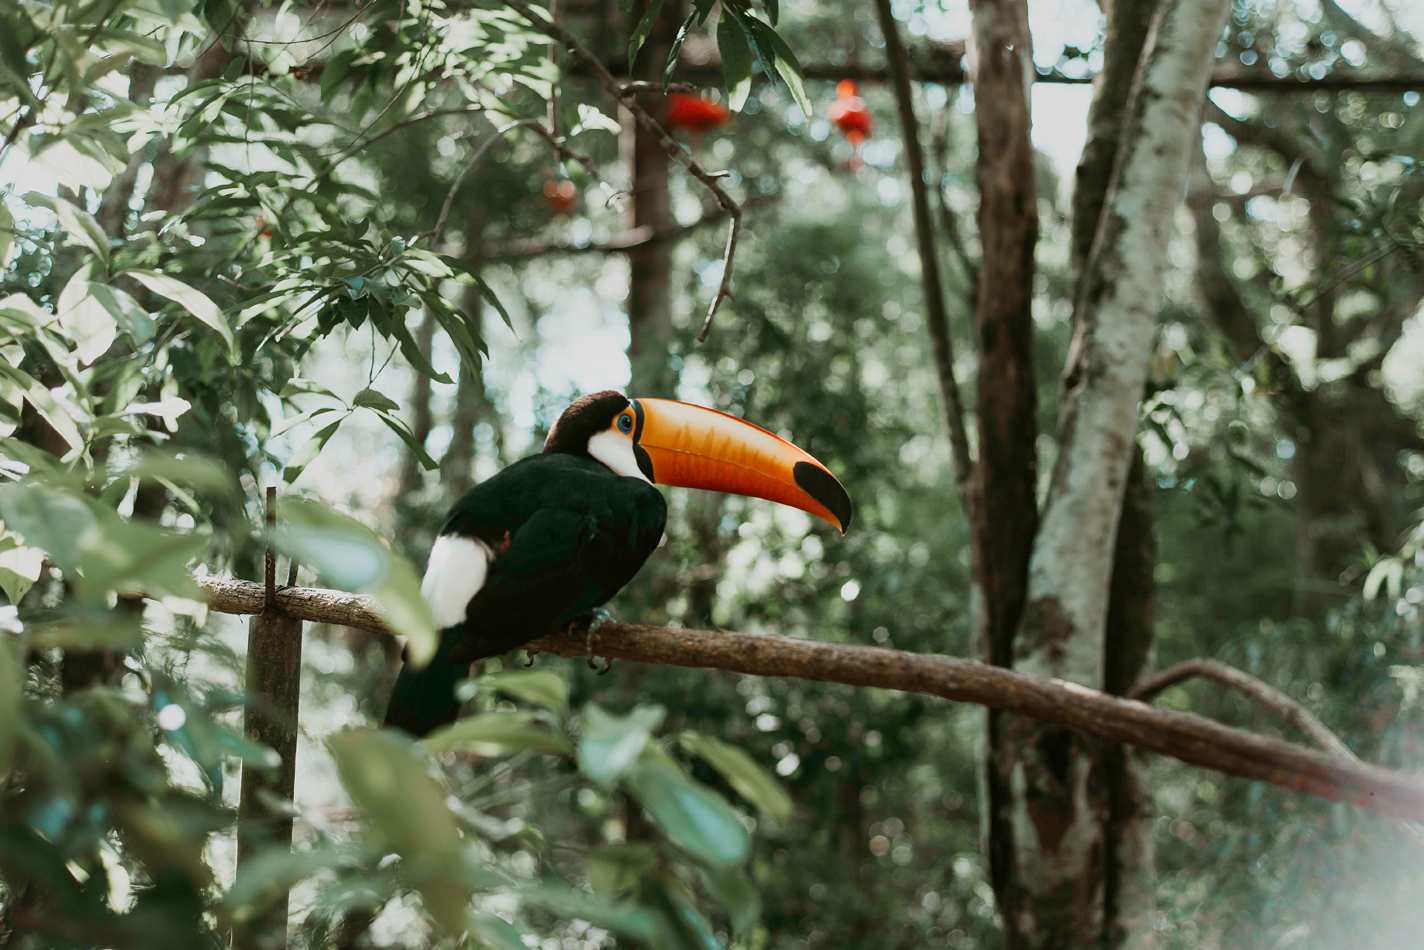 Toucan - Foz do Iguaçu